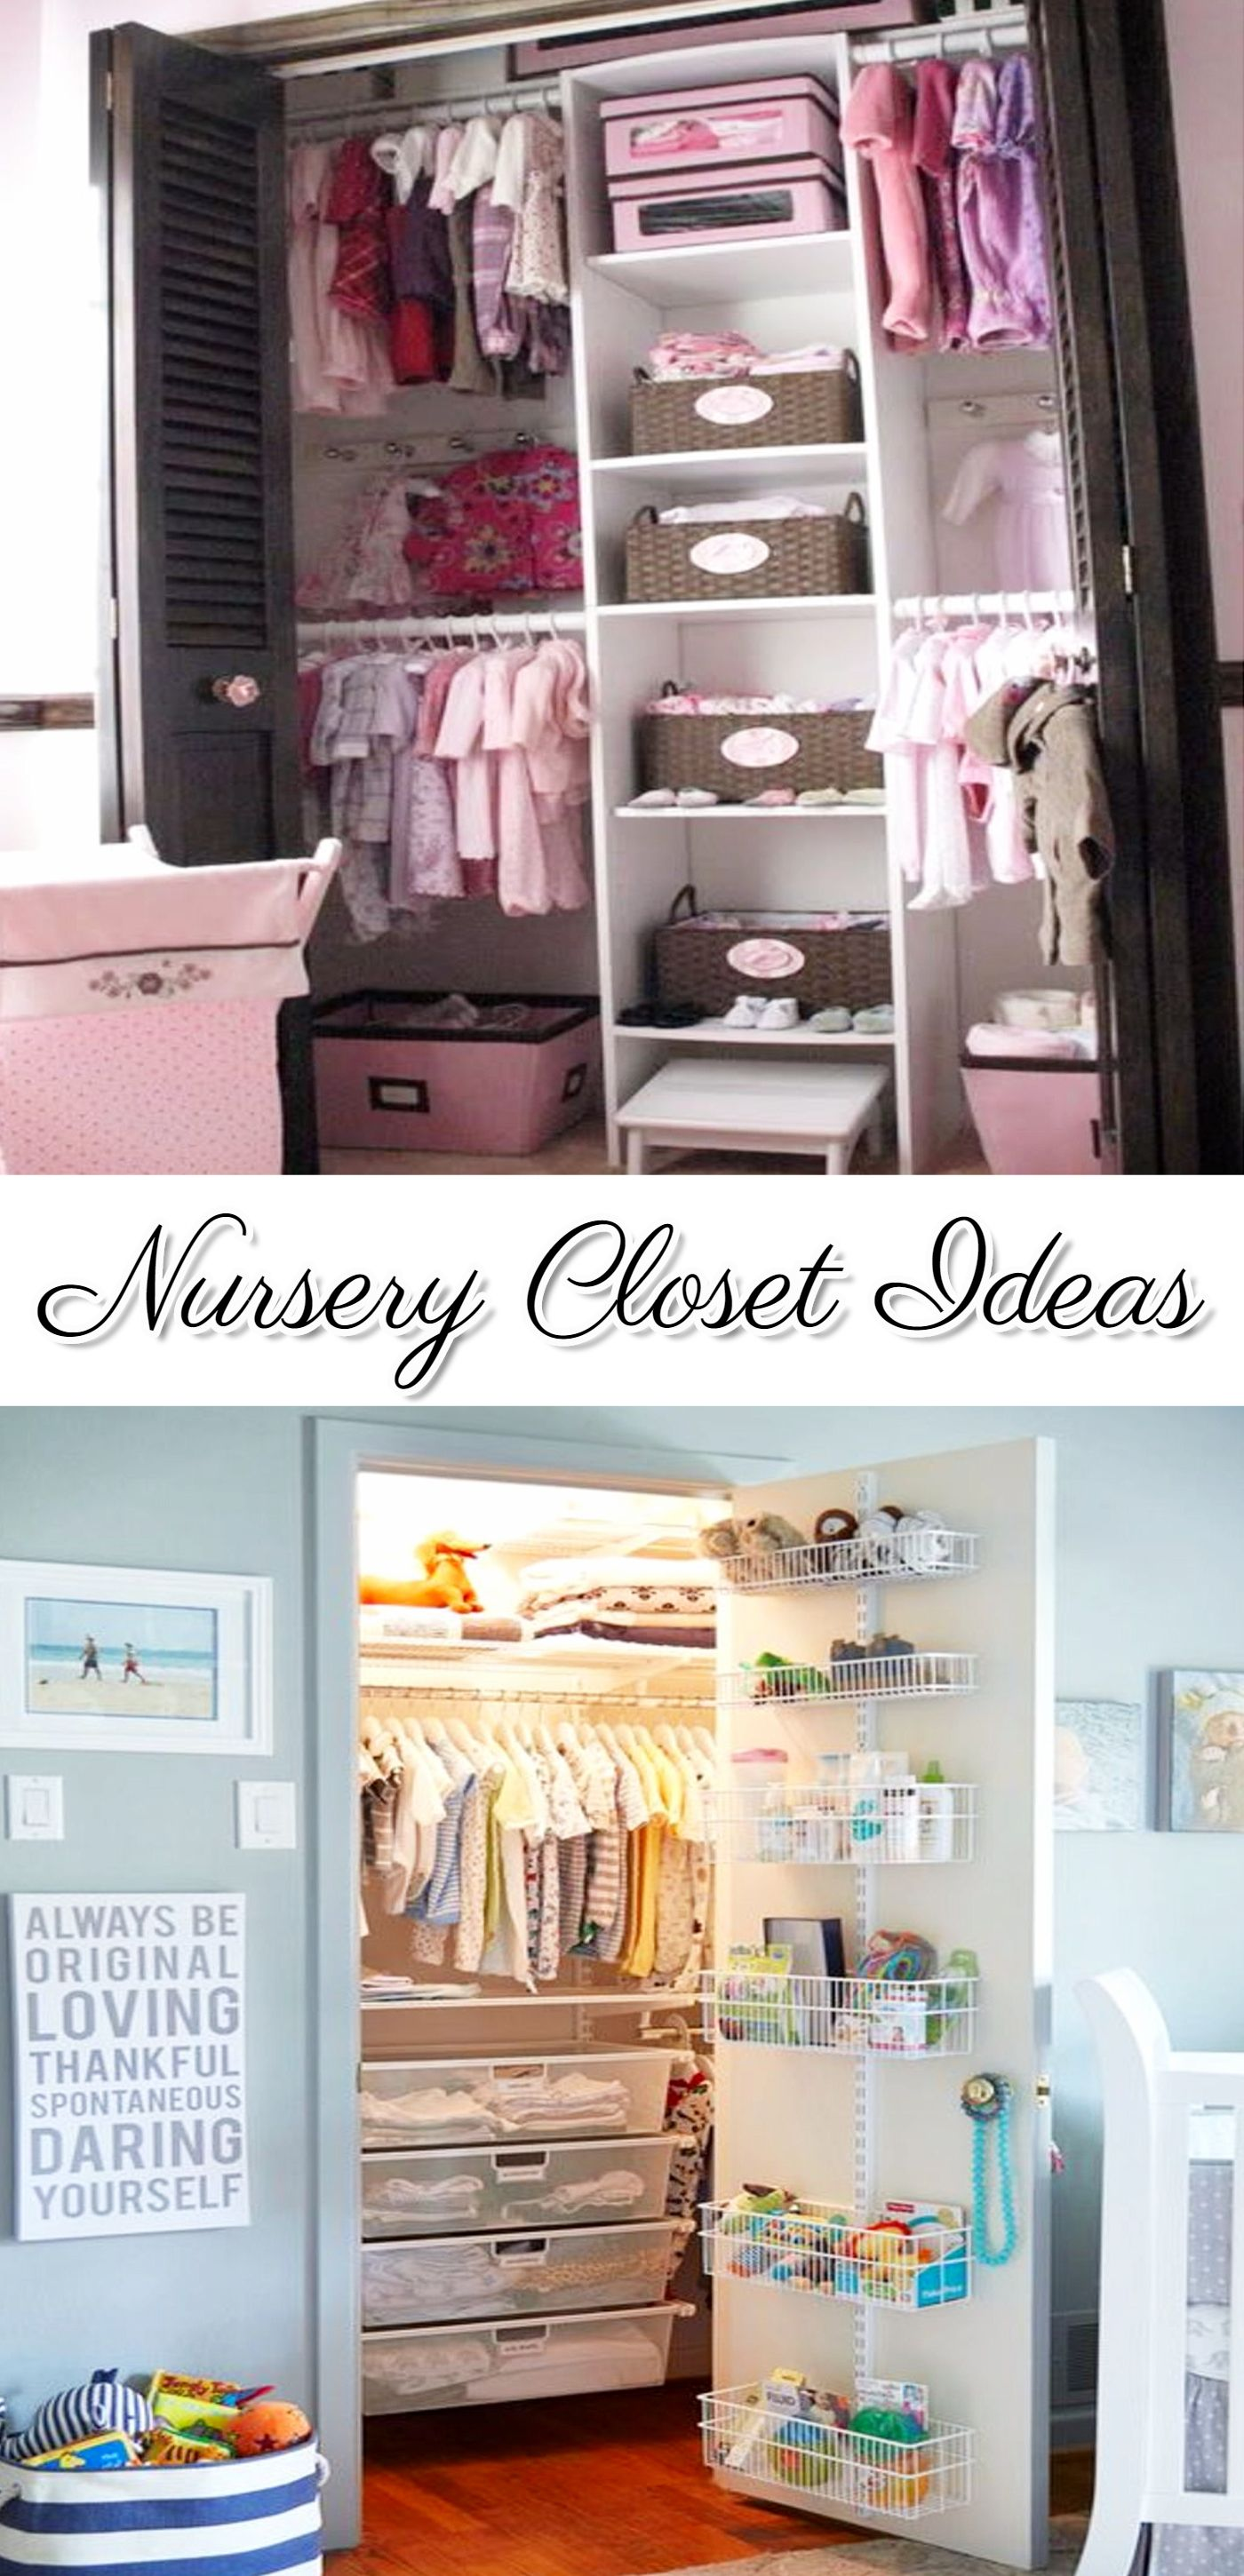 a closet show clothes category baby walk room since in for converted d you making post was babys s thought about closets from kids to the last i linen